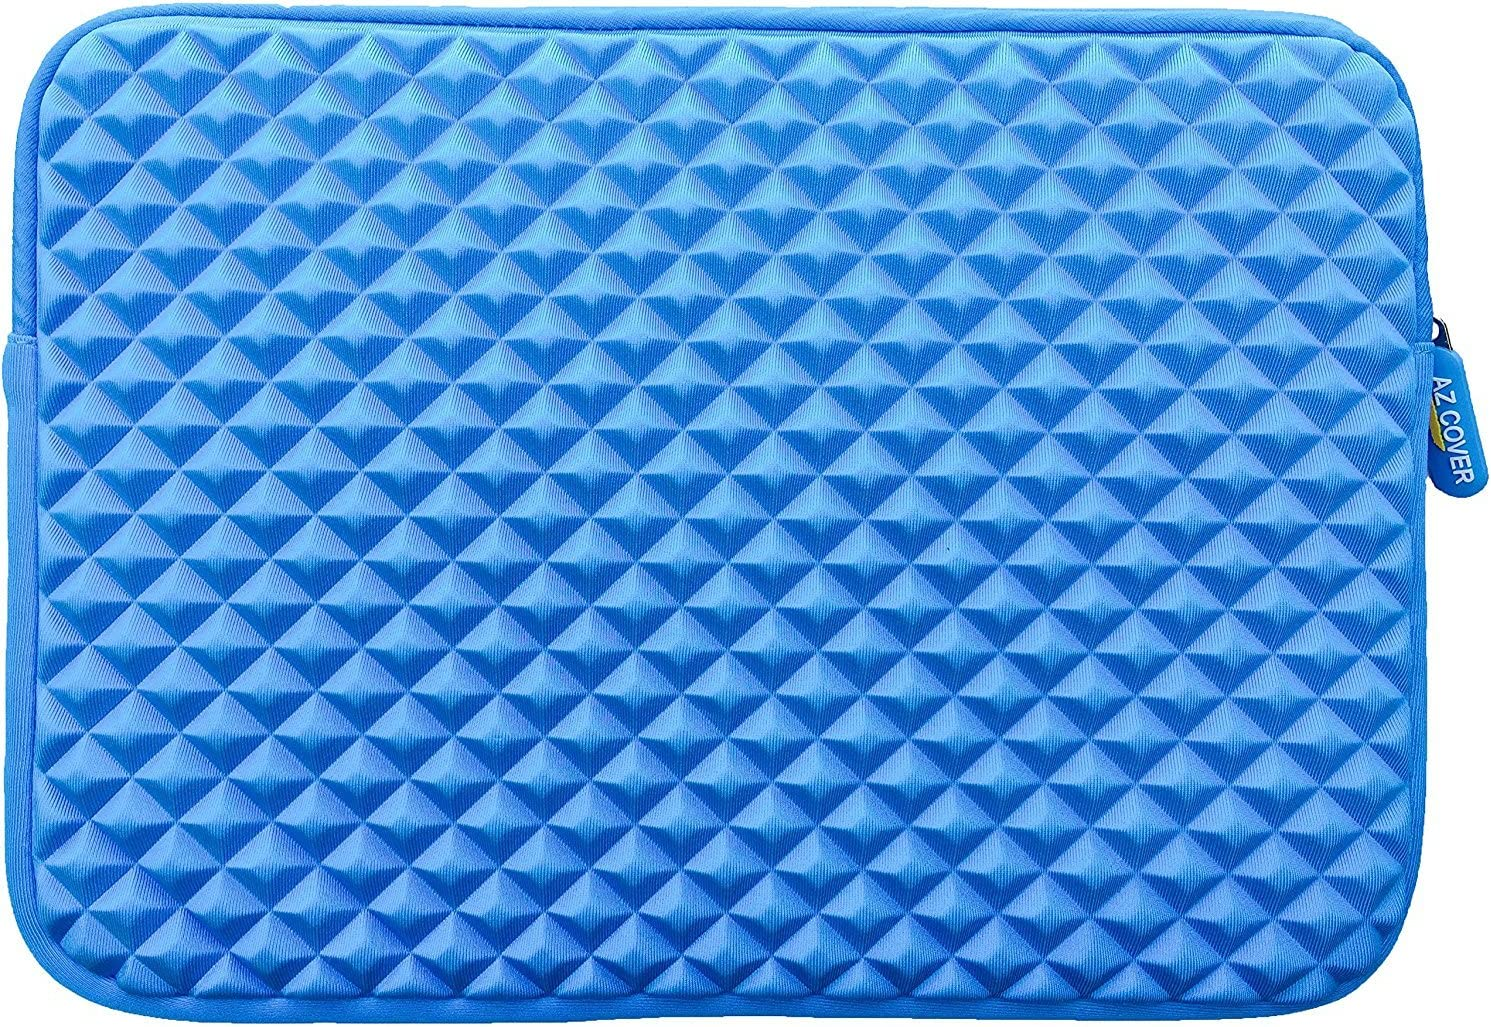 AZ-Cover 13.3-Inch Simplicity Stylish Diamond Foam Shock-Resistant Neoprene Sleeve For Dell XPS 13 9343-2727SLV 13.3 Full HD Signature Edition Laptop Blue